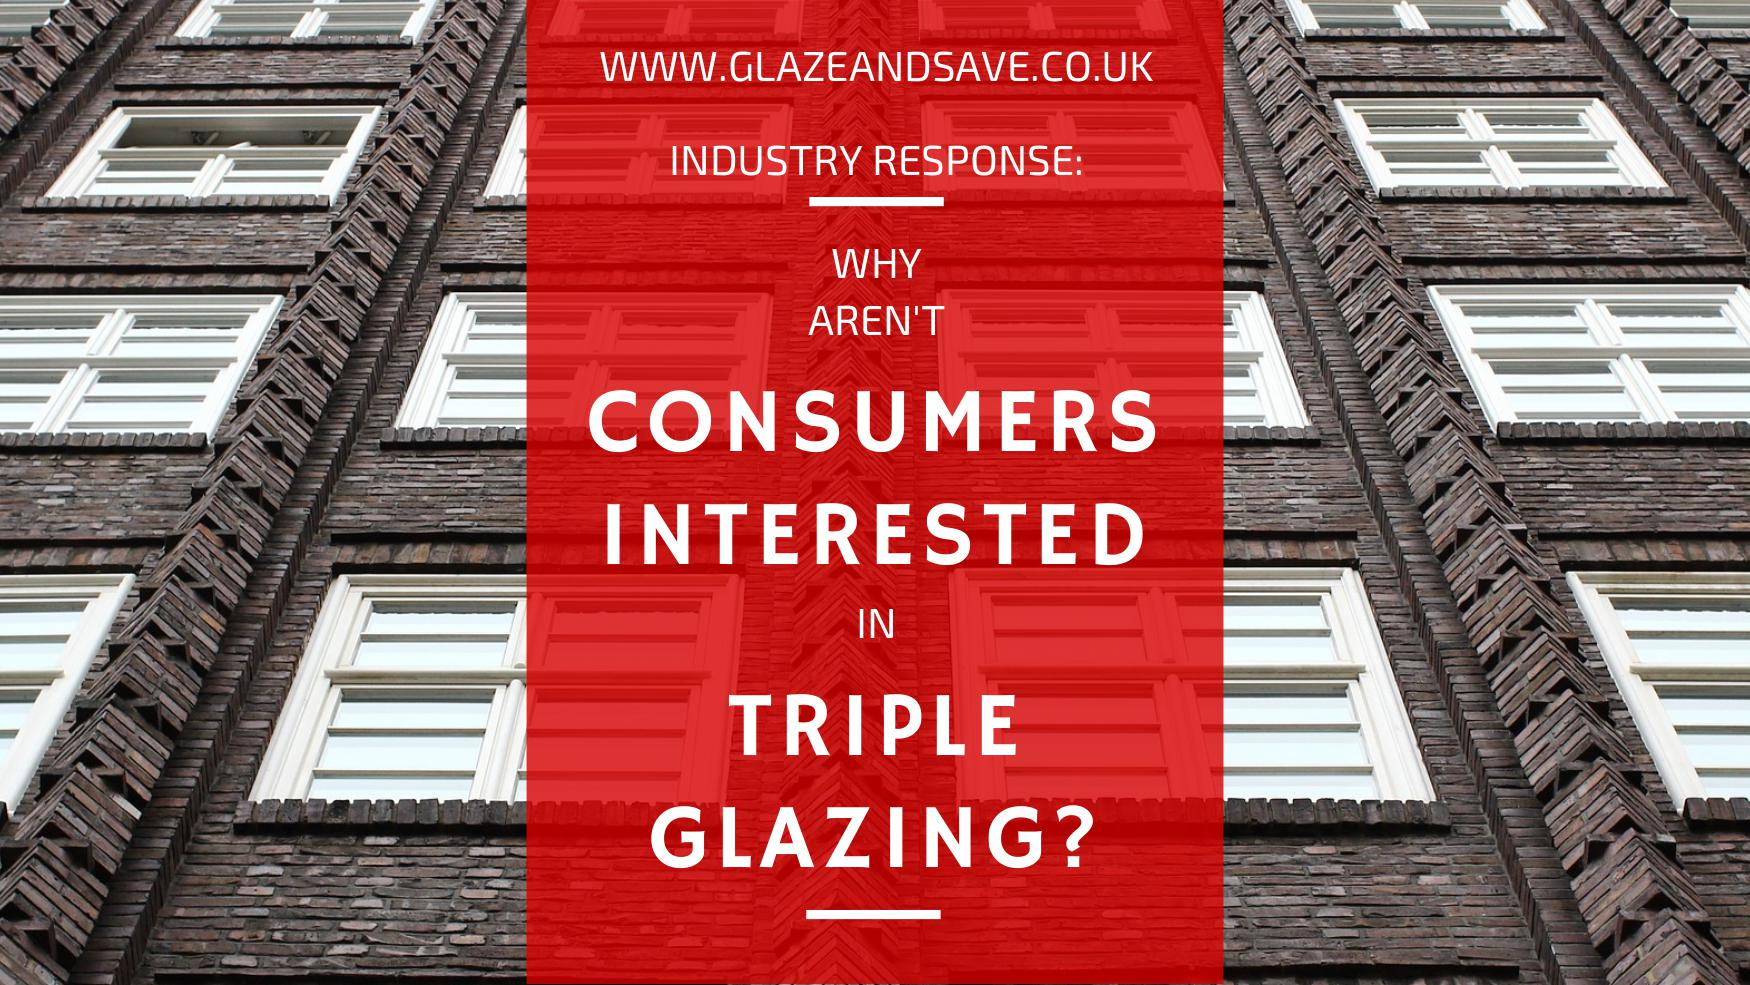 Why aren't consumers interested in triple glazing by Glaze & Save bespoke magnetic glazing and draught proofing based in Perth Scotland.